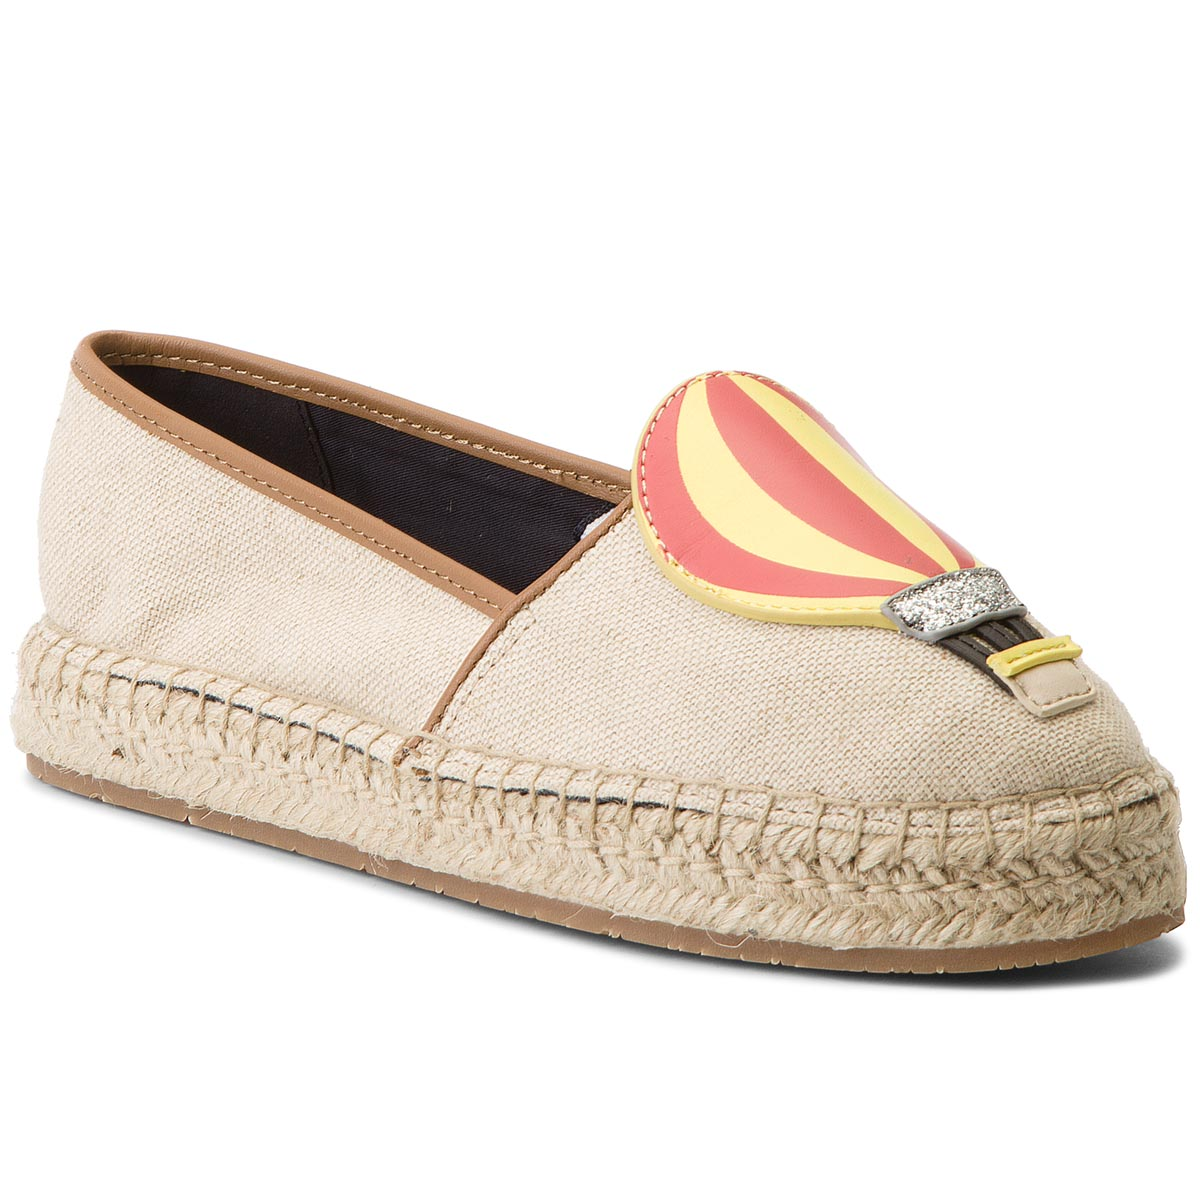 Espadrile TOMMY HILFIGER - Patch Espadrille Balloon FW0FW03549 Tapioca 639